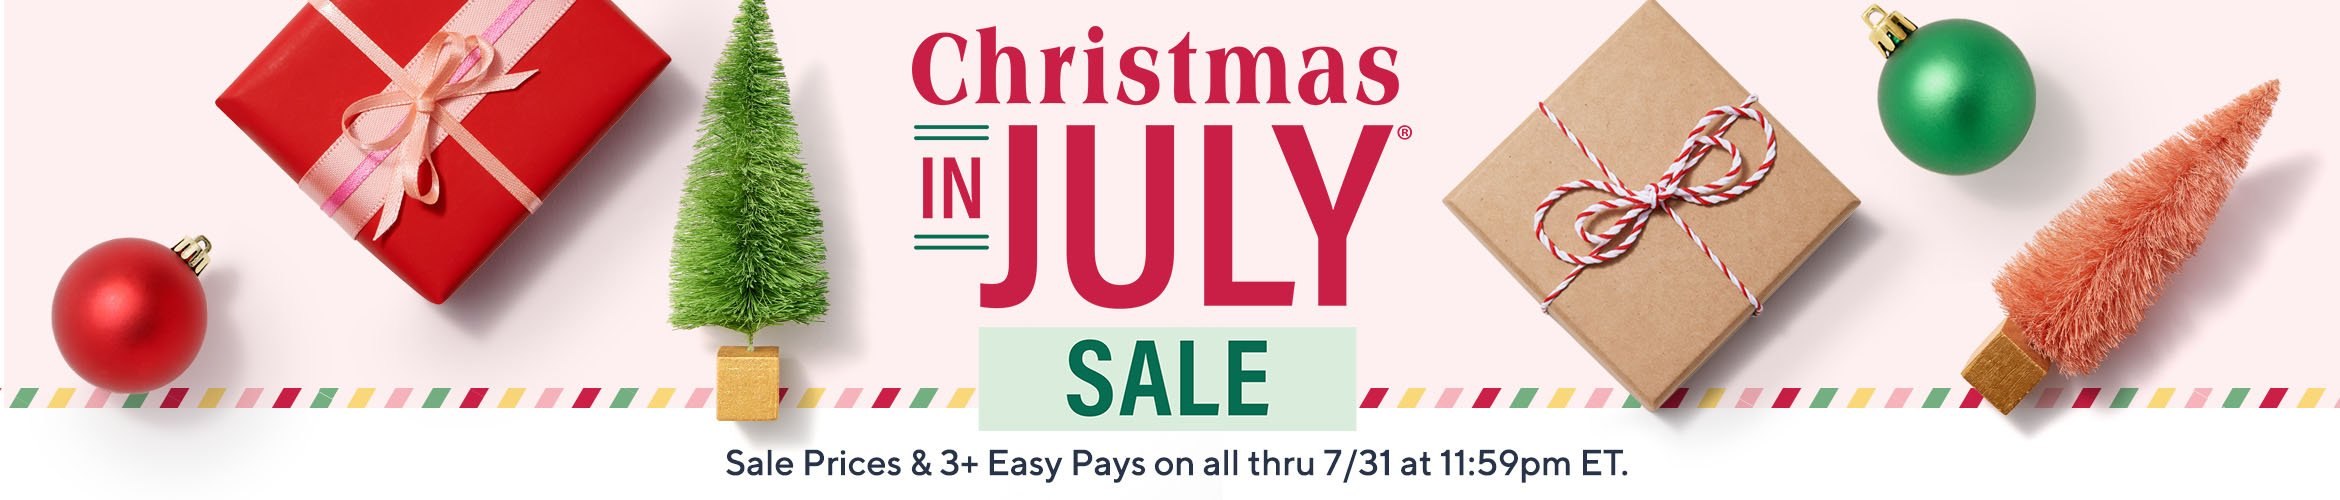 Christmas in July® Sale   Sale Prices & 3+ Easy Pays on all thru 7/31 at 11:59pm ET.